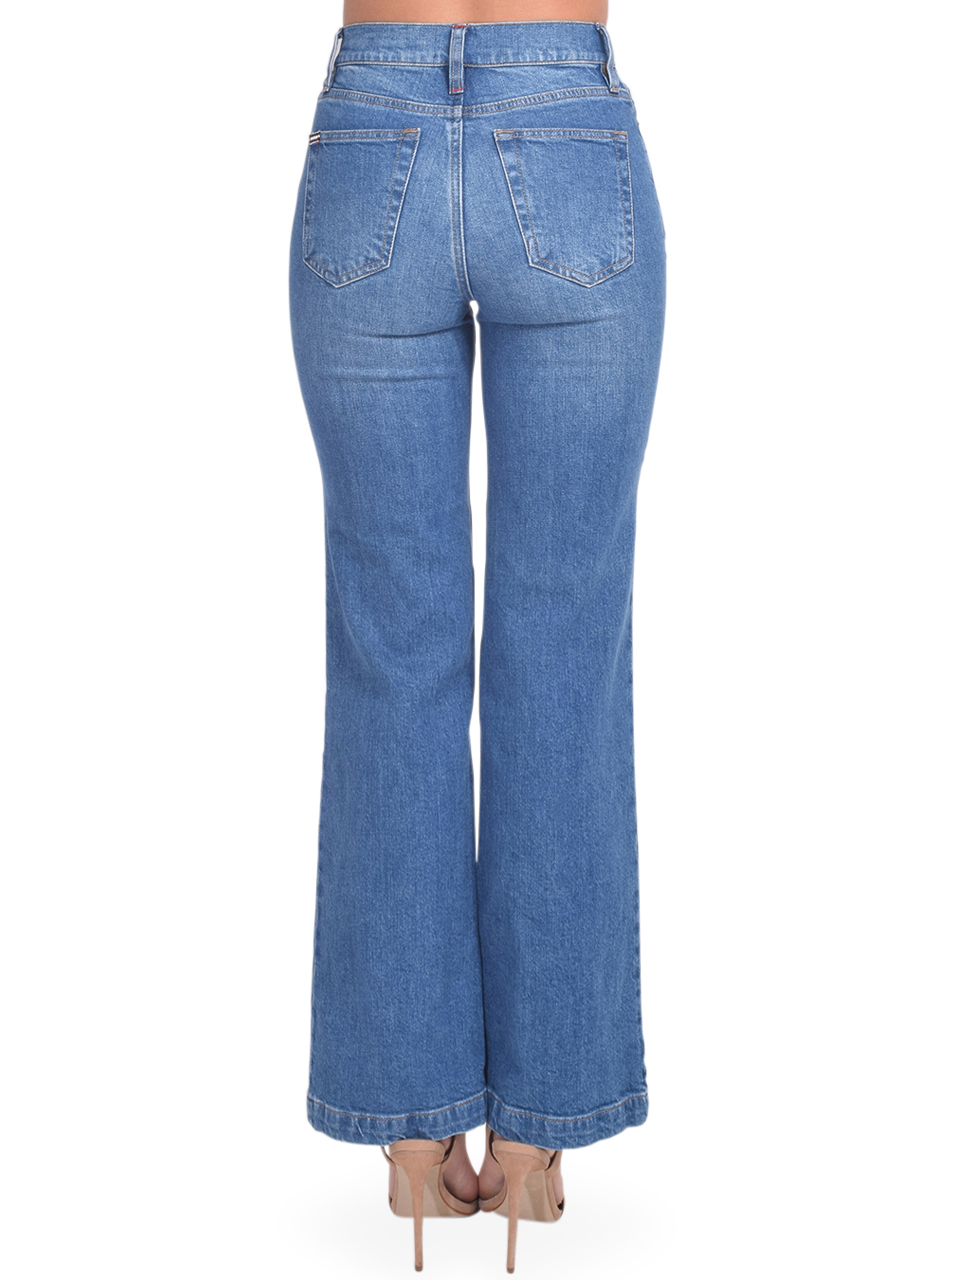 Alice + Olivia Liza Mid Rise Straight Ankle Jean in Best Intentions Back View